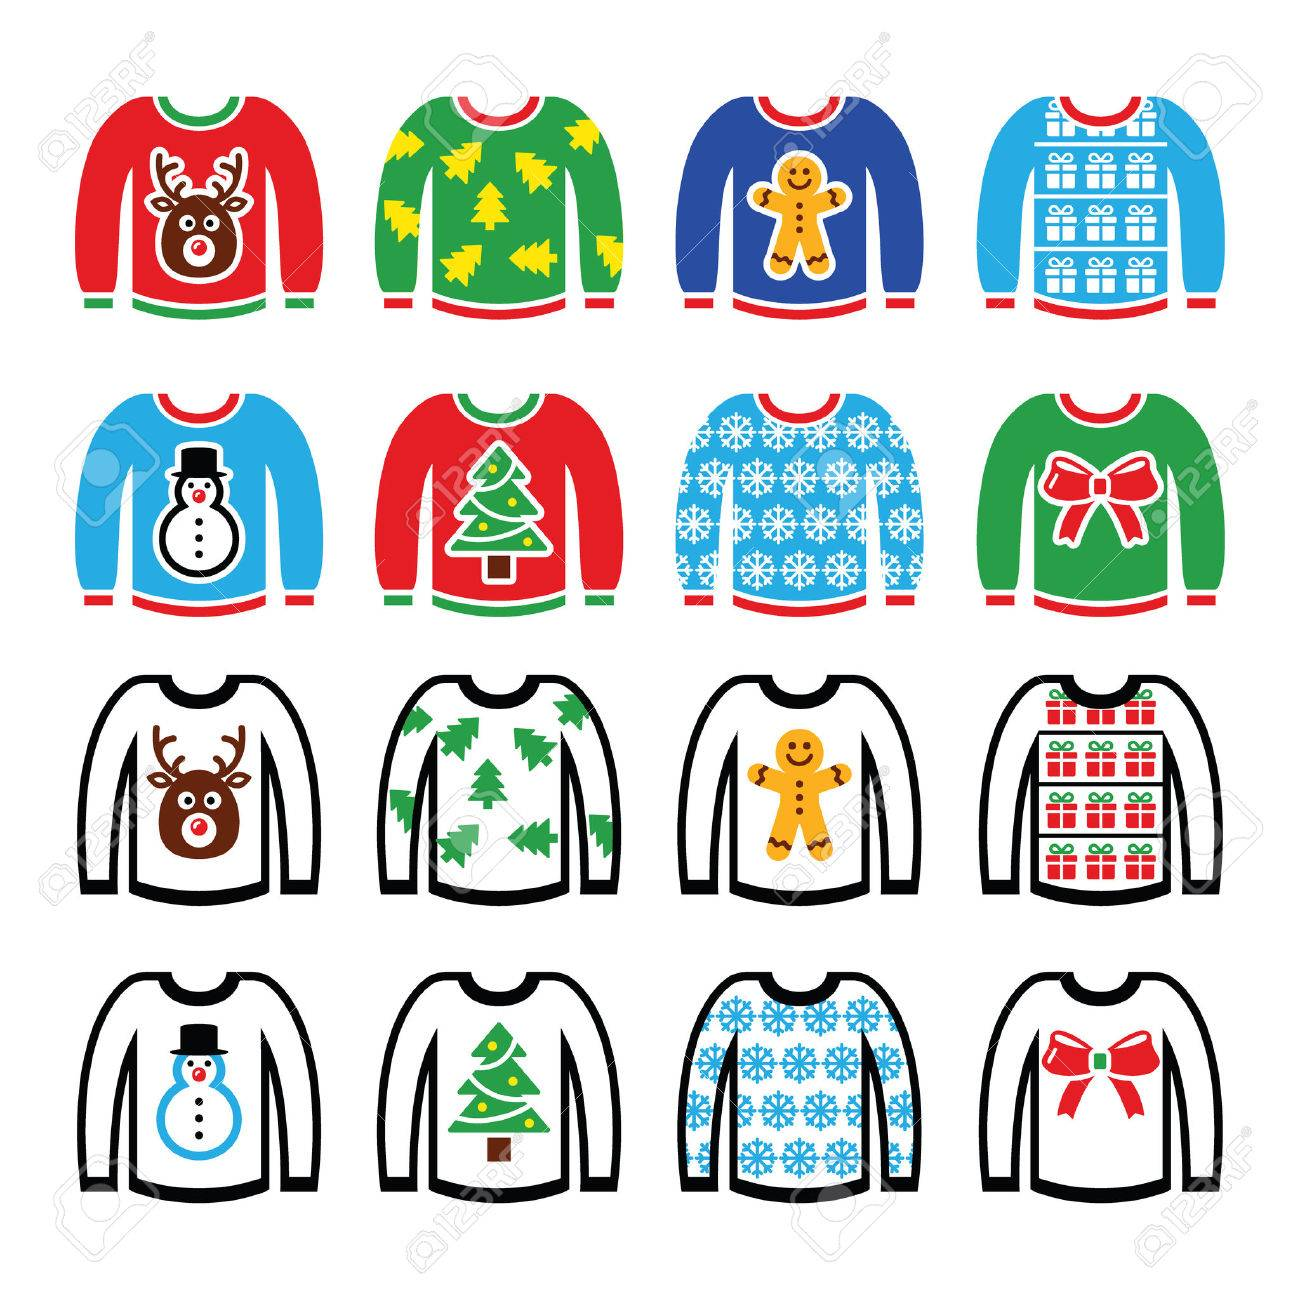 Ugly Christmas sweater on jumper icons set.